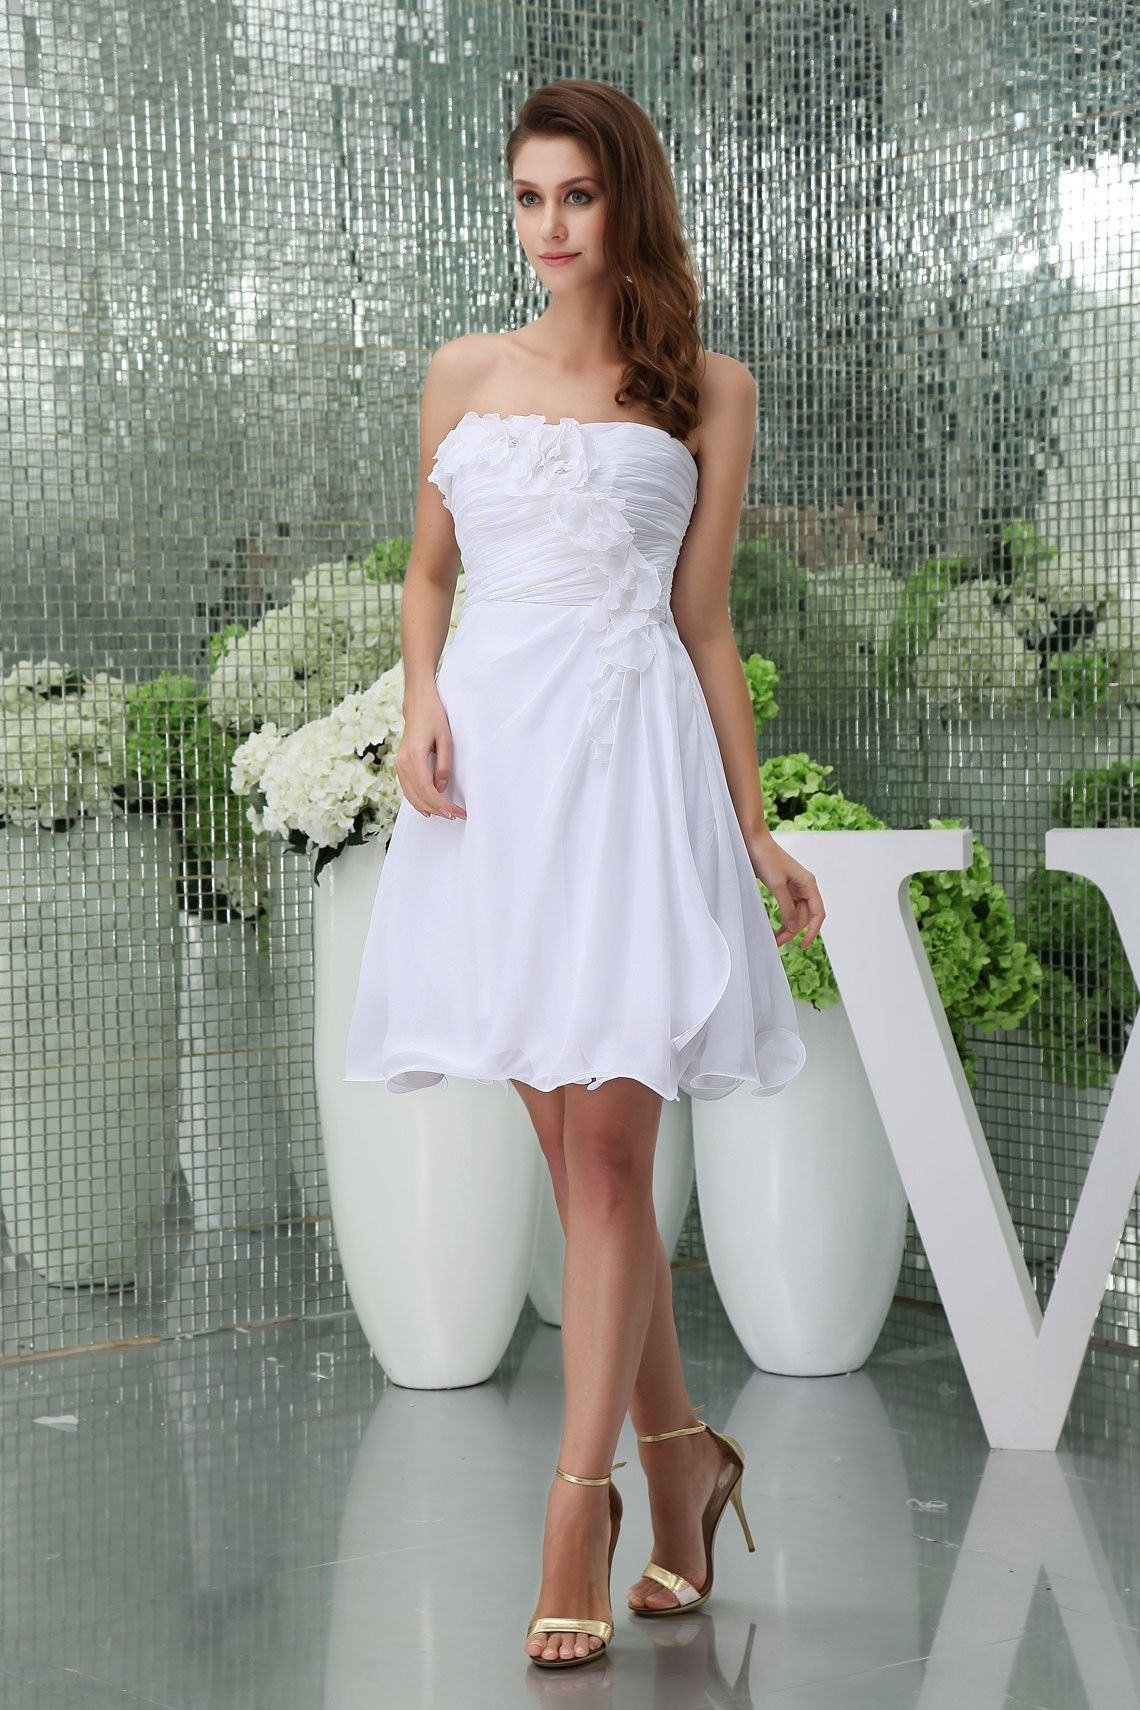 Mini white wedding dress  Strapless Short Aline Flowers Pleated Chiffon Bridesmaid Dress